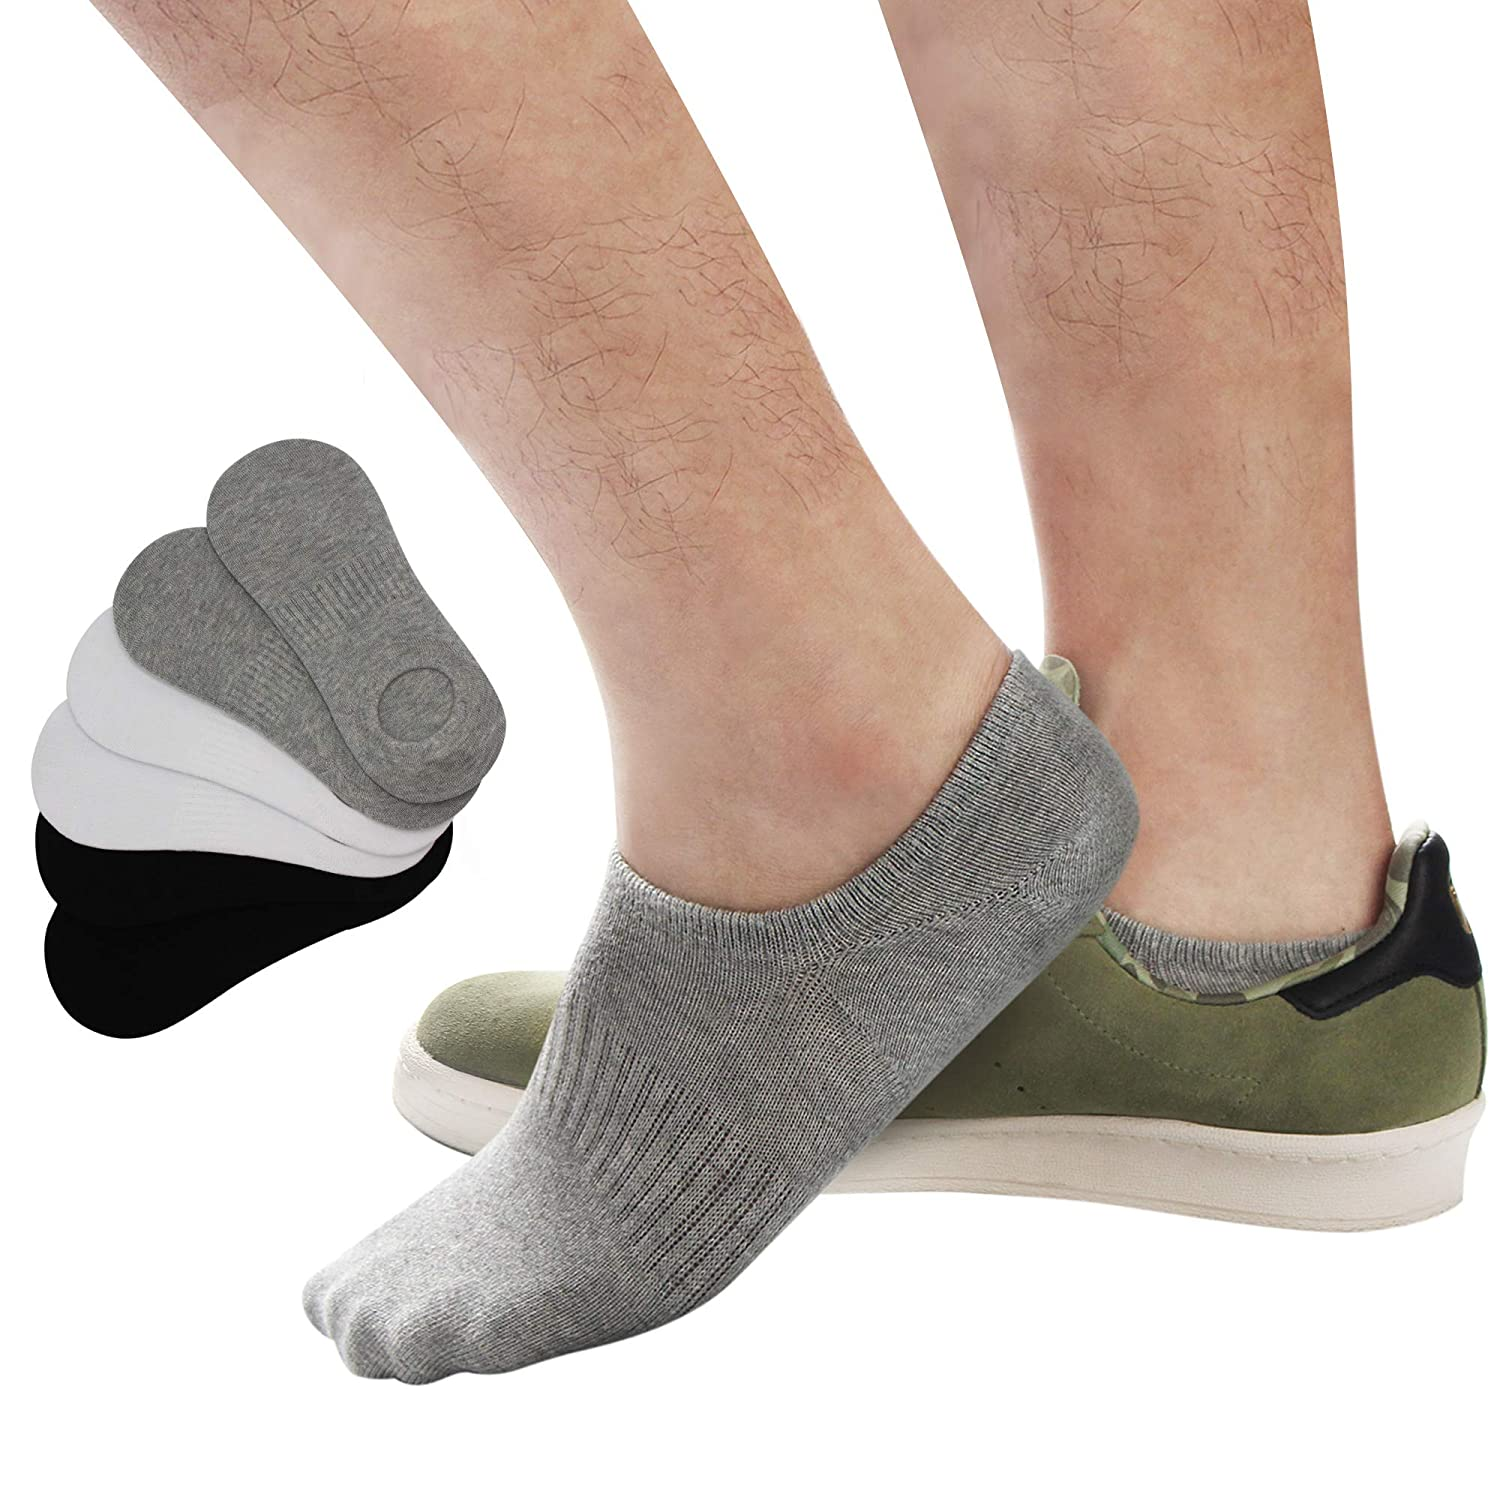 latest many styles lace up in No Show Socks Athletic,Men Running Socks Sox Low Cut Casual Cotton Socks  Thin Invisible Non-Slip Socks,Odor-Resistant Breathable Soft Low ...